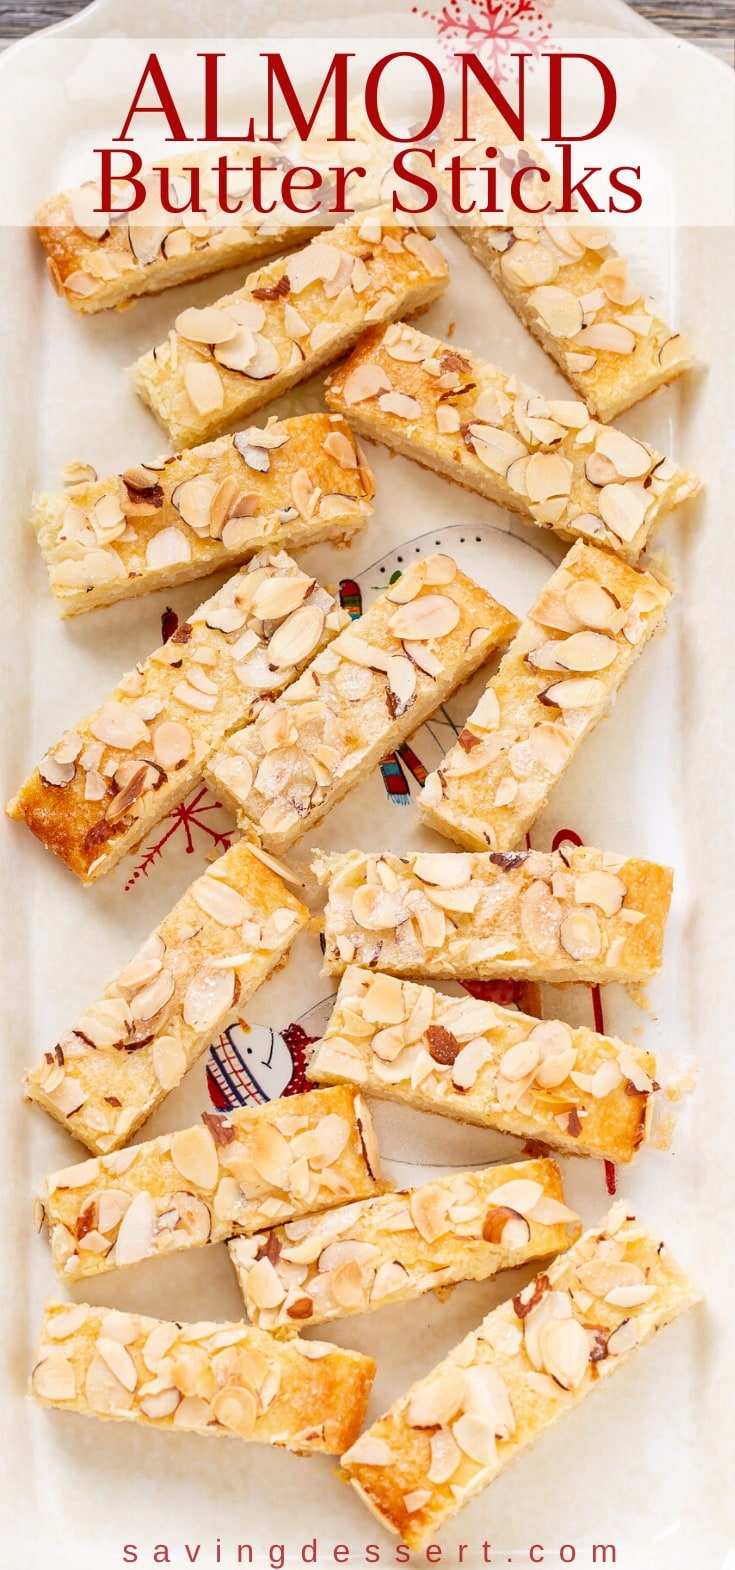 A plate of almond butter sticks topped with sliced almonds